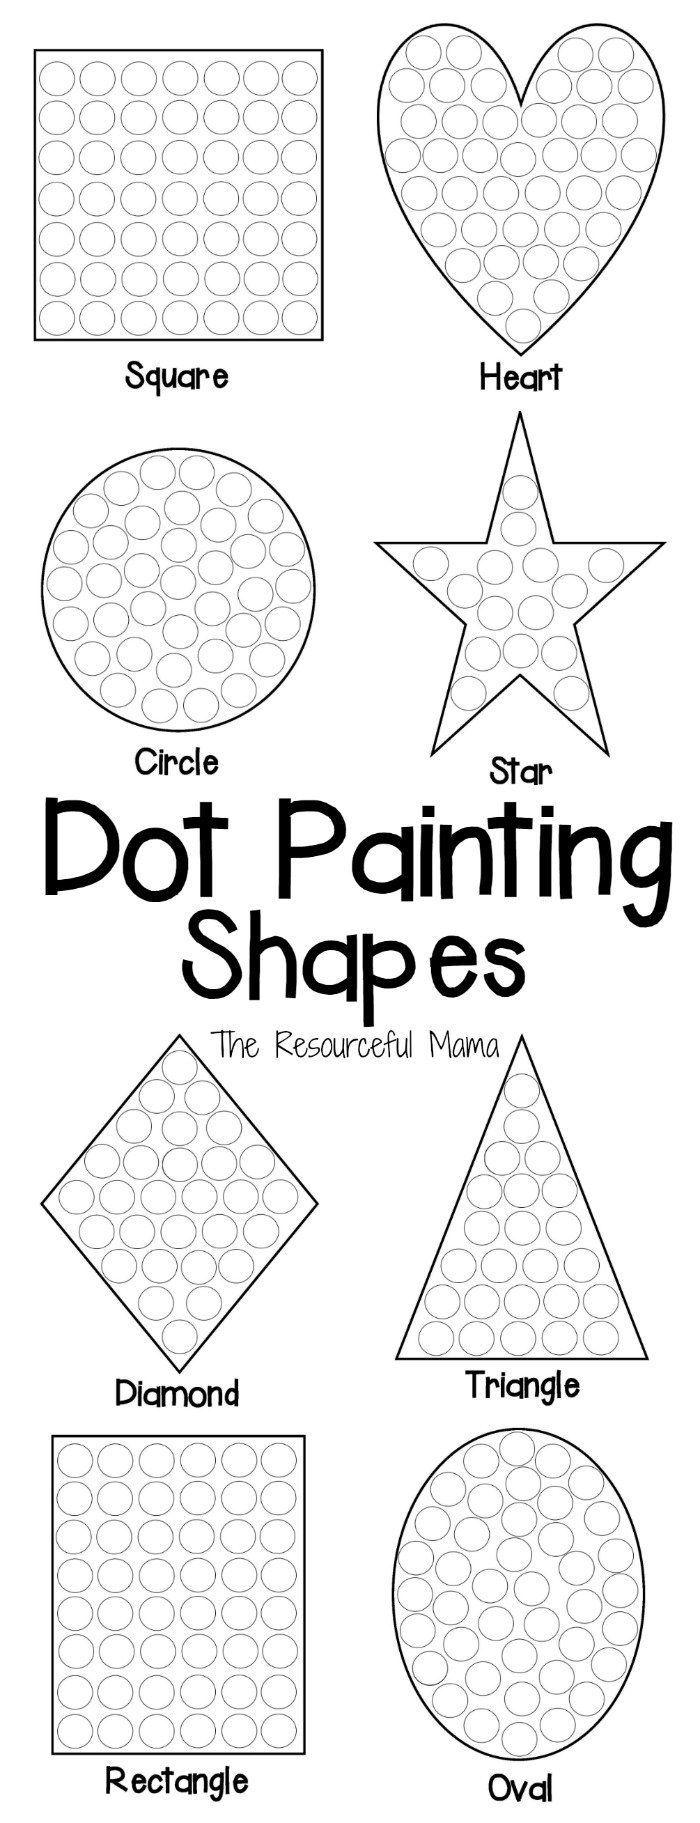 shapes dot painting worksheets  // Páginas para pintar formas con puntos #dotadot #shapes #worksheet